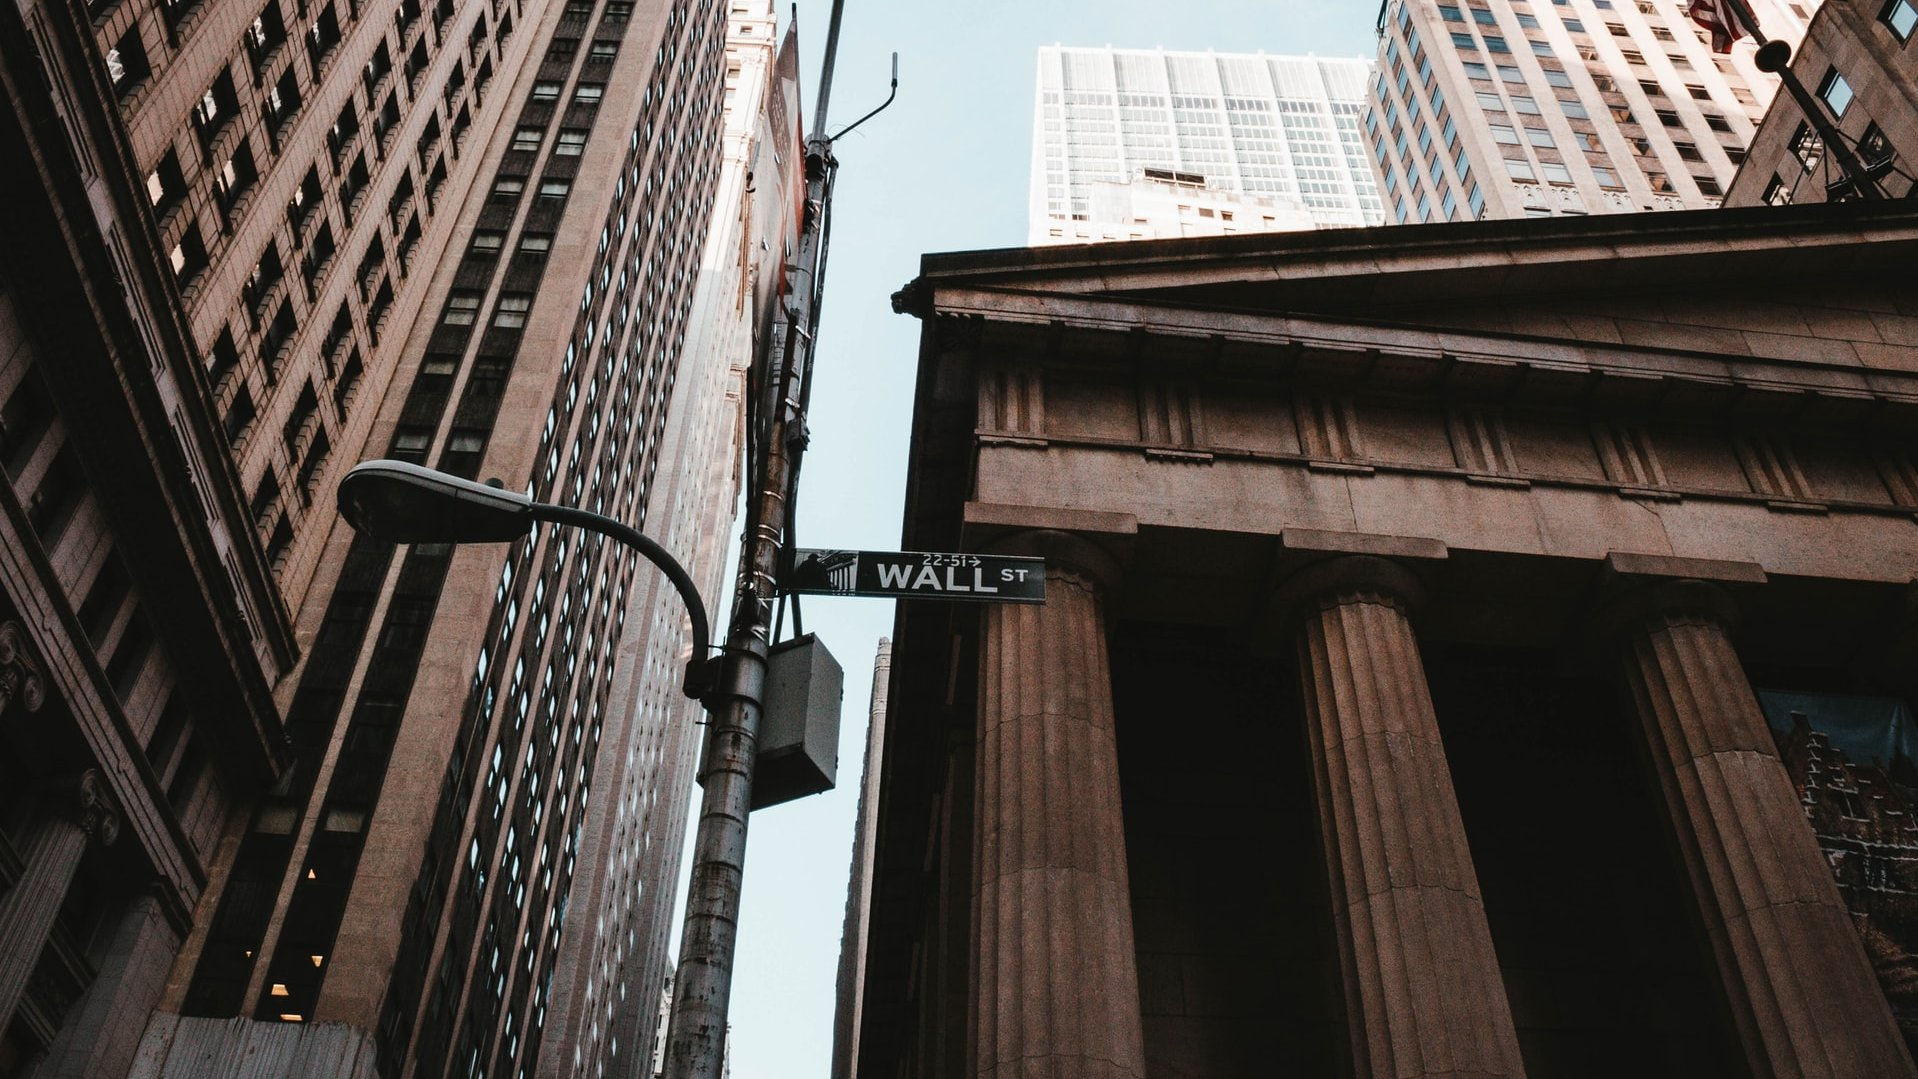 Wall Street, where stocks dropped sharply